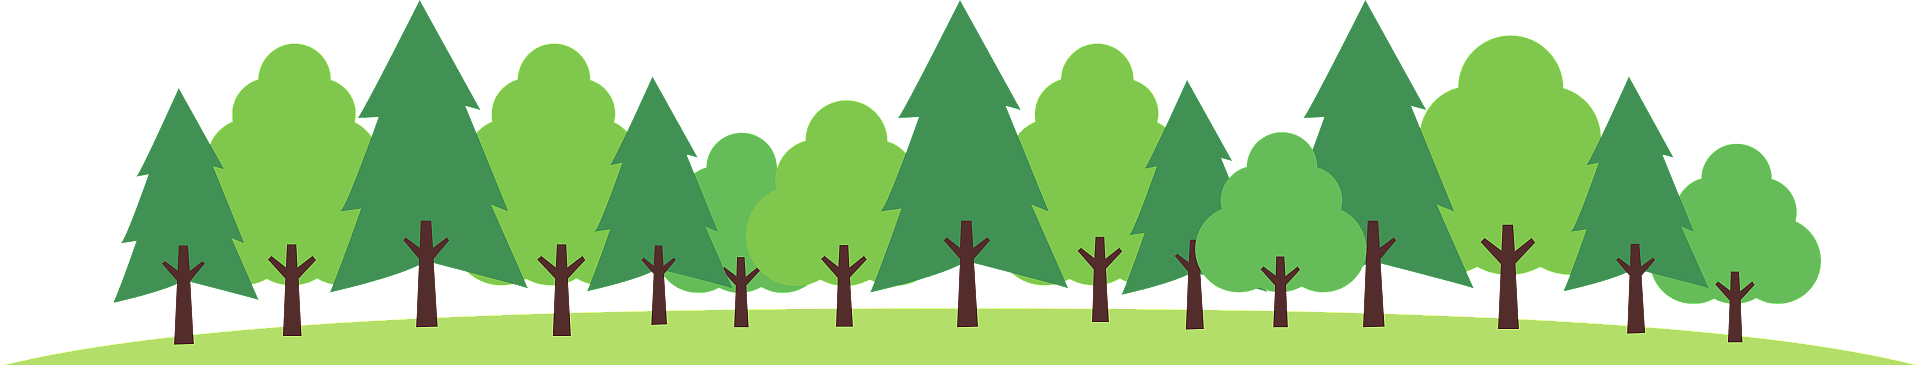 Forest of trees clipart. Free download transparent .PNG | Creazilla